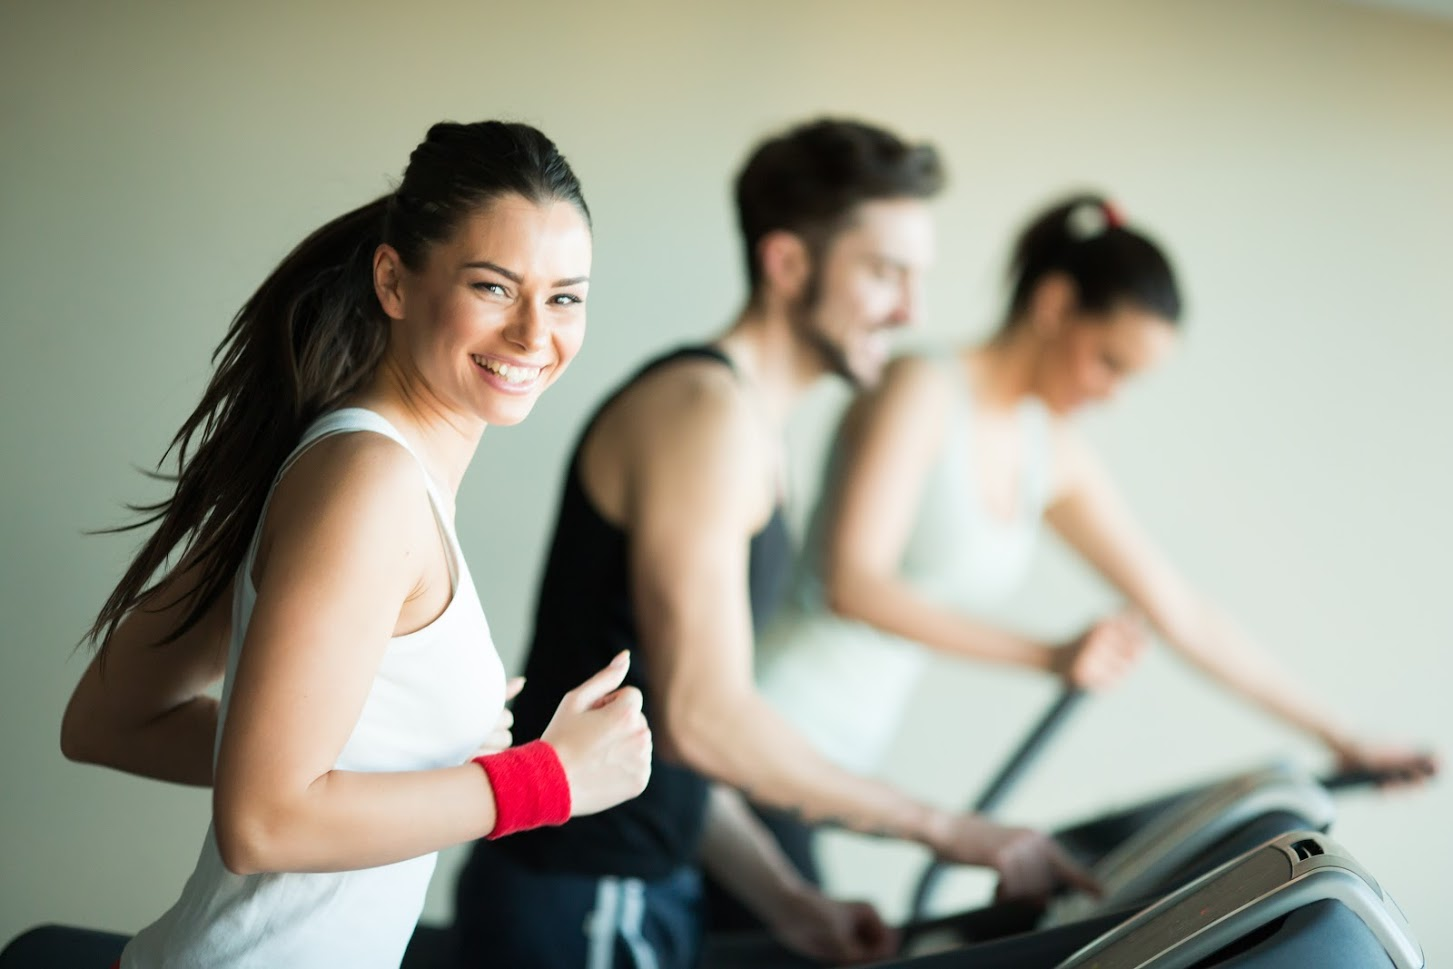 This is the image for the news article titled How Exercise Helps Keep Your Enamel Healthy